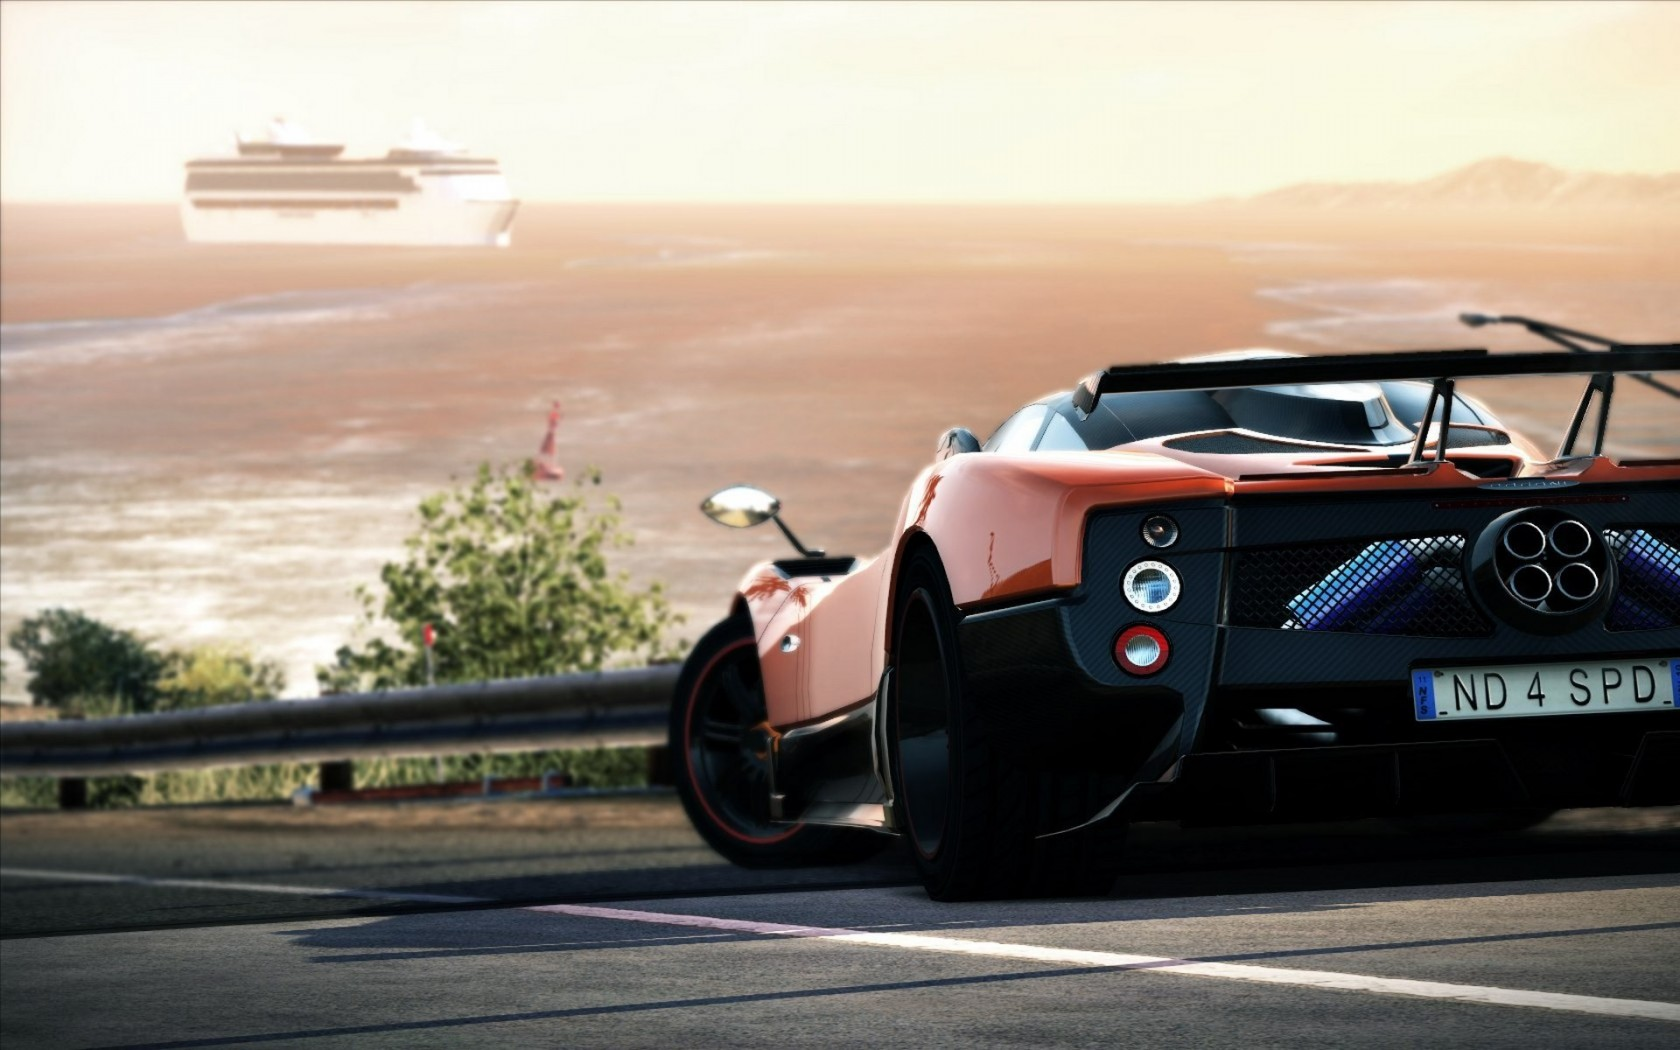 Pagani-car-wallpaper-wp421728-1